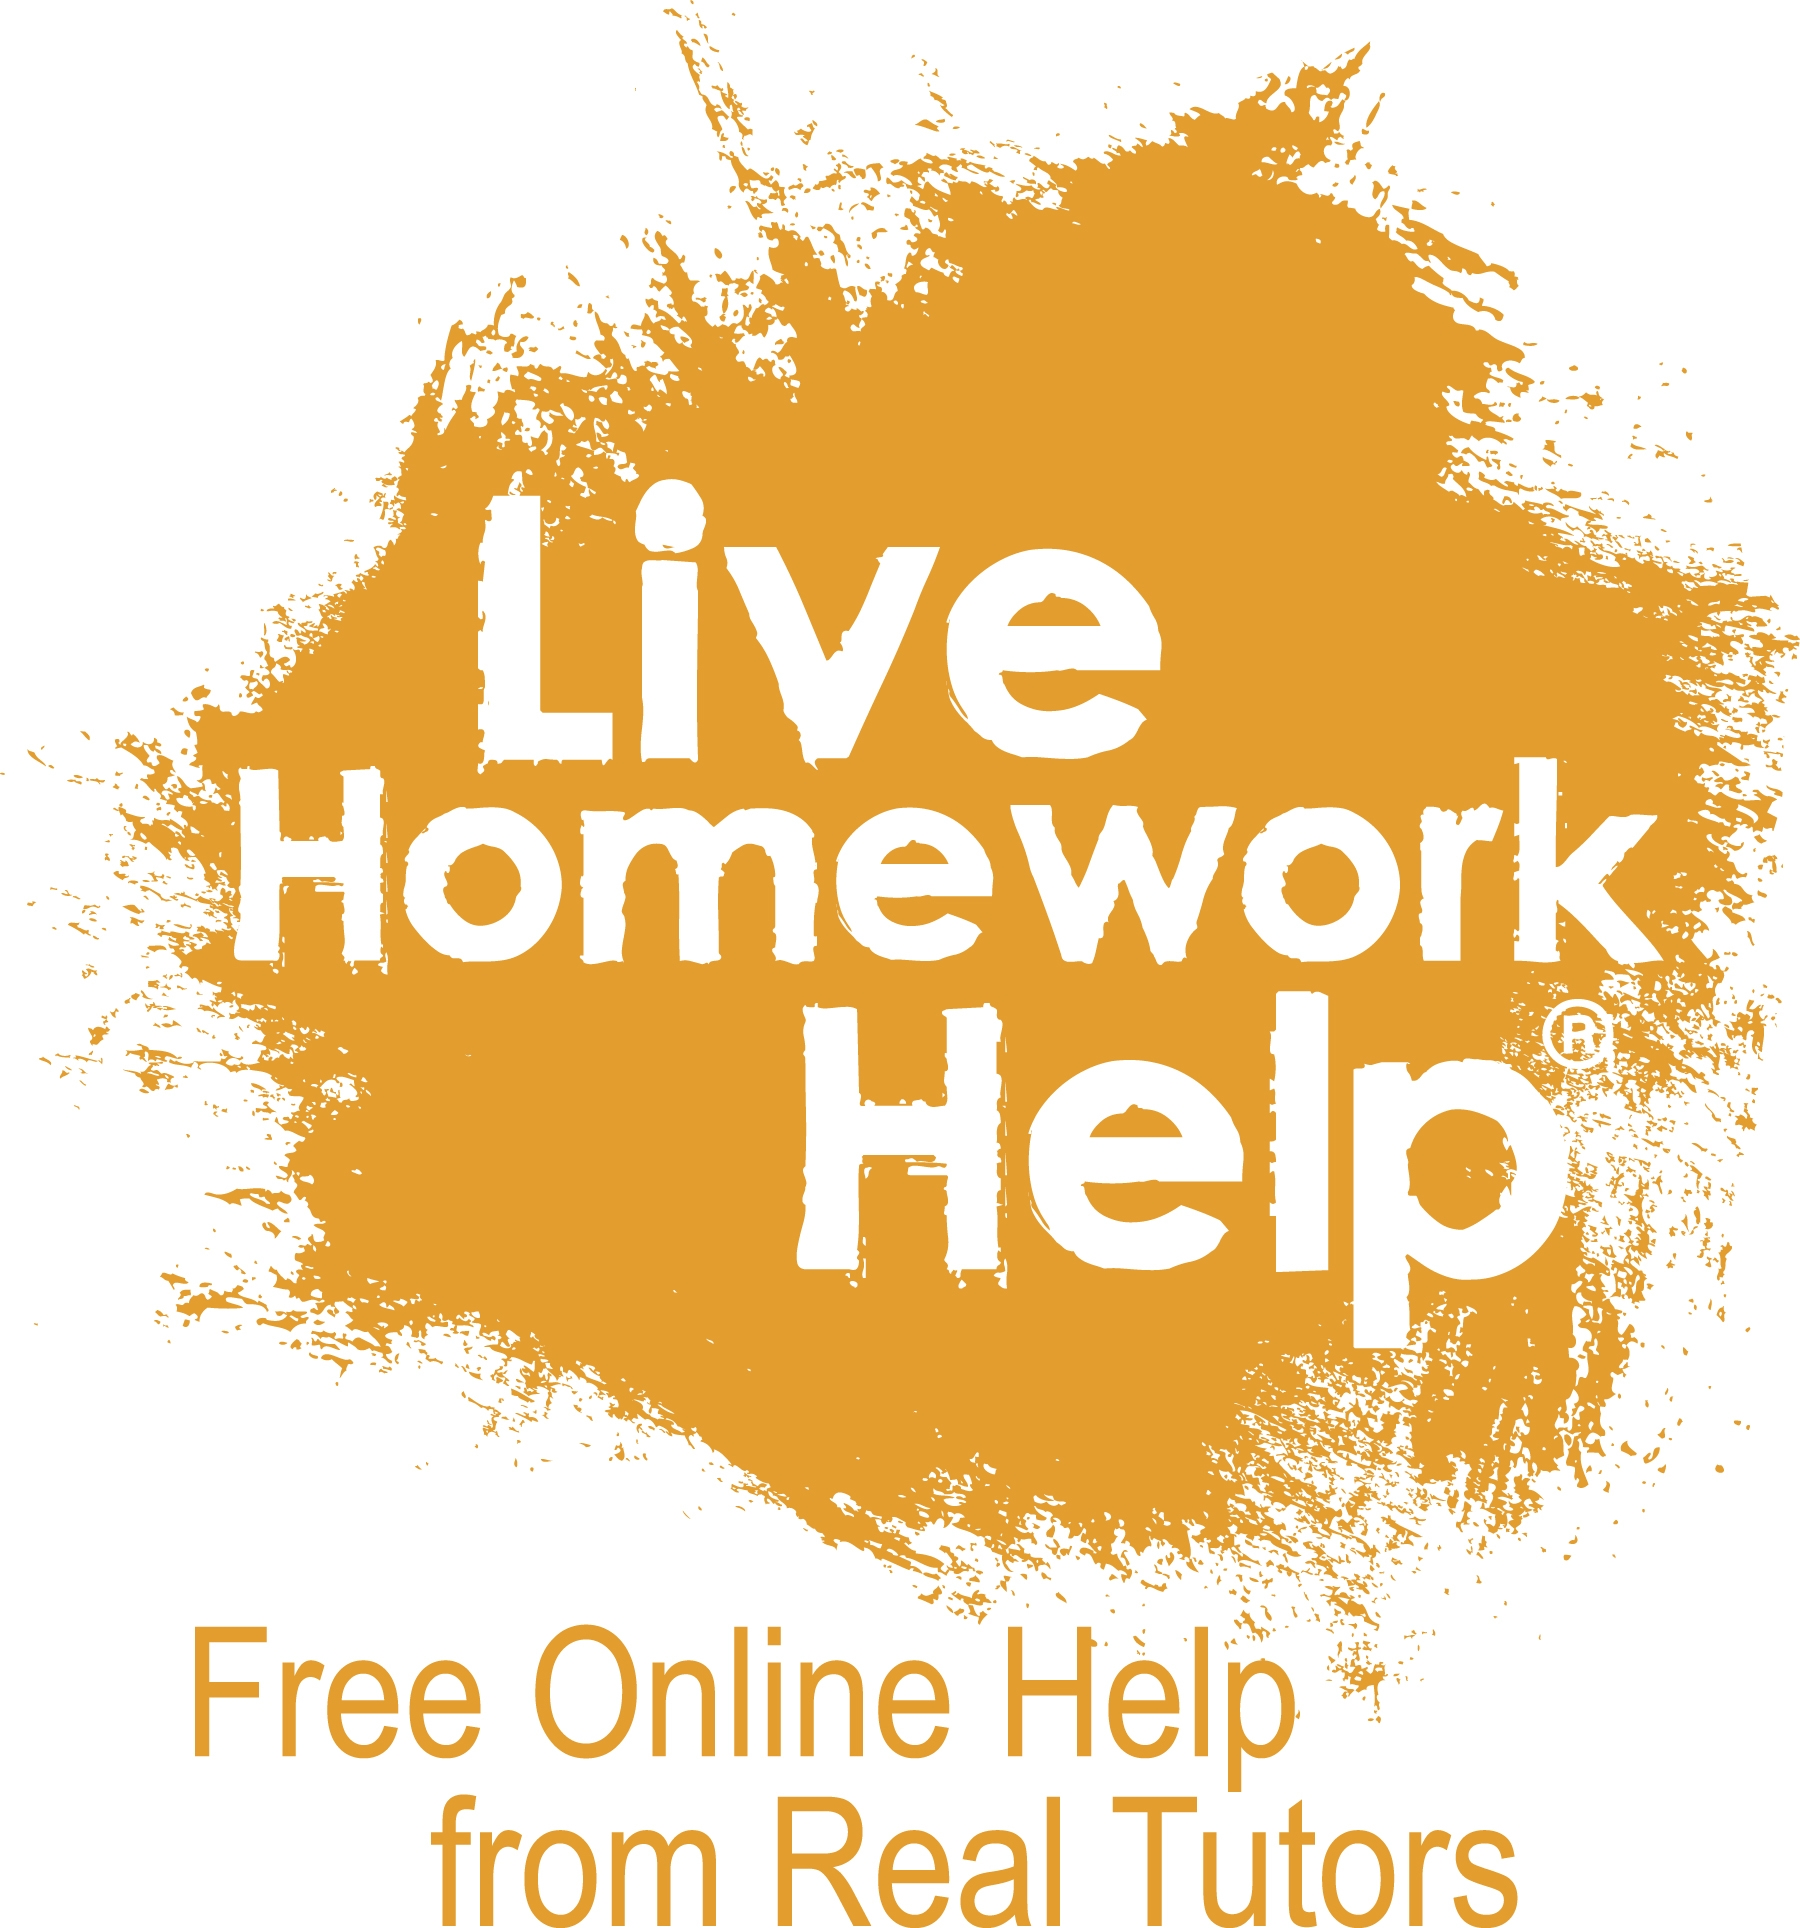 help homework online teamwestside com the site you are ing can only be viewed using a modern browser if you don t care click here please upgrade your browser to increase safety pay for